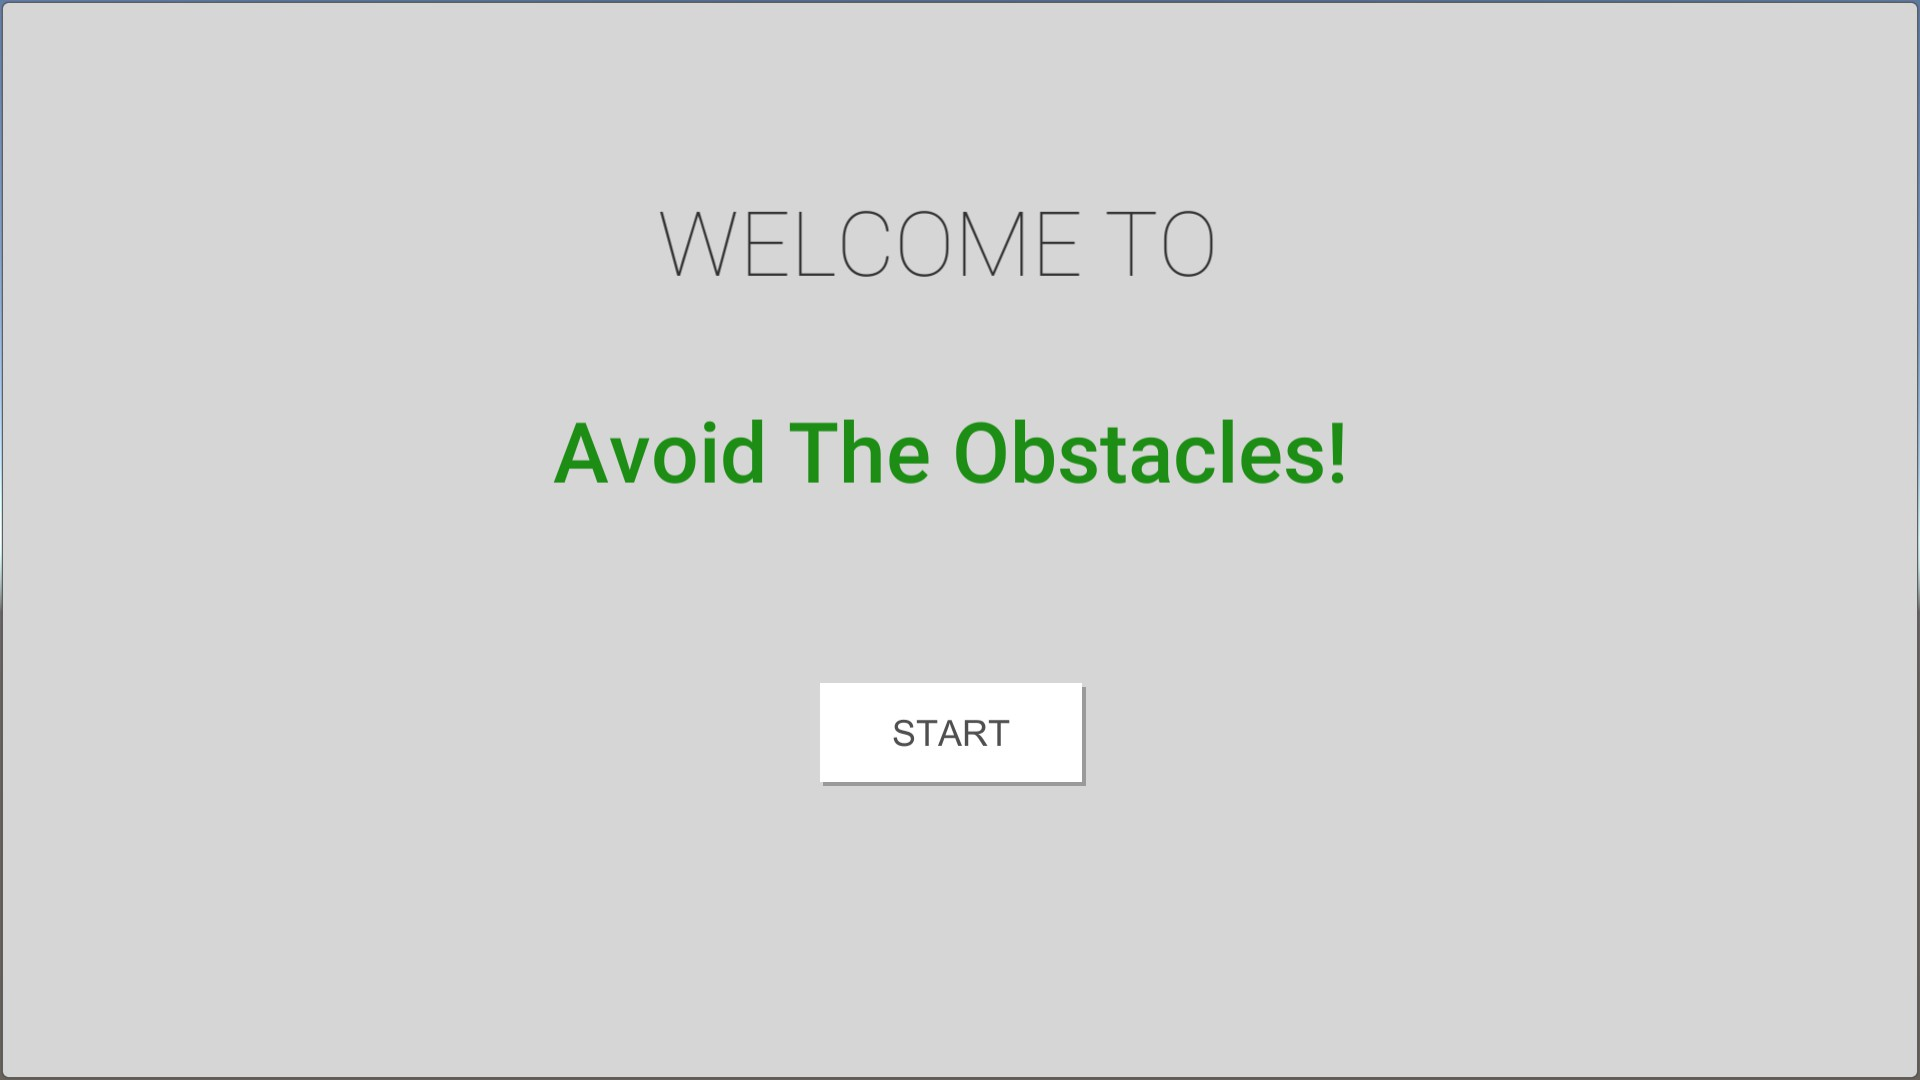 Avoid The Obstacles!